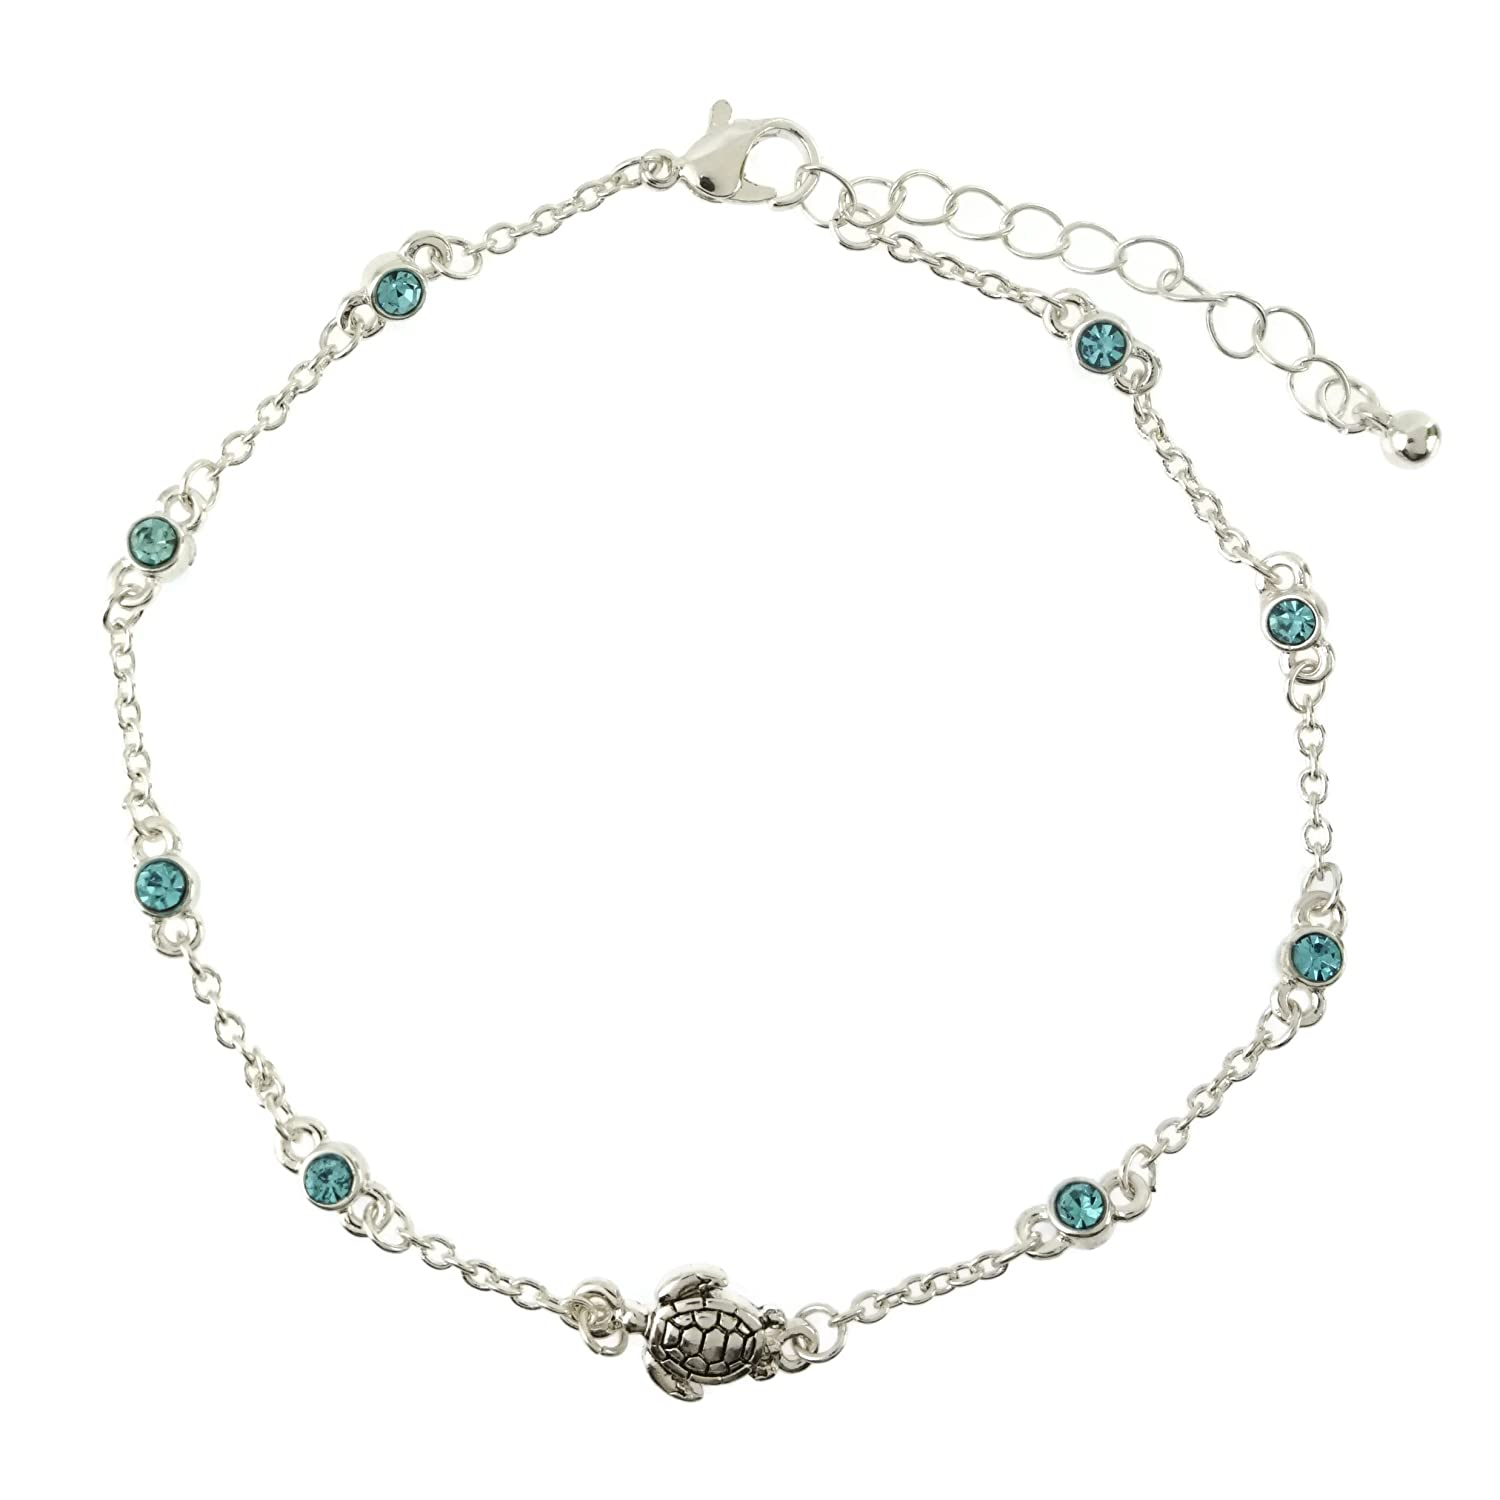 Elosee Women's Turtle Charm Color Stone Sealife Link Anklet AT